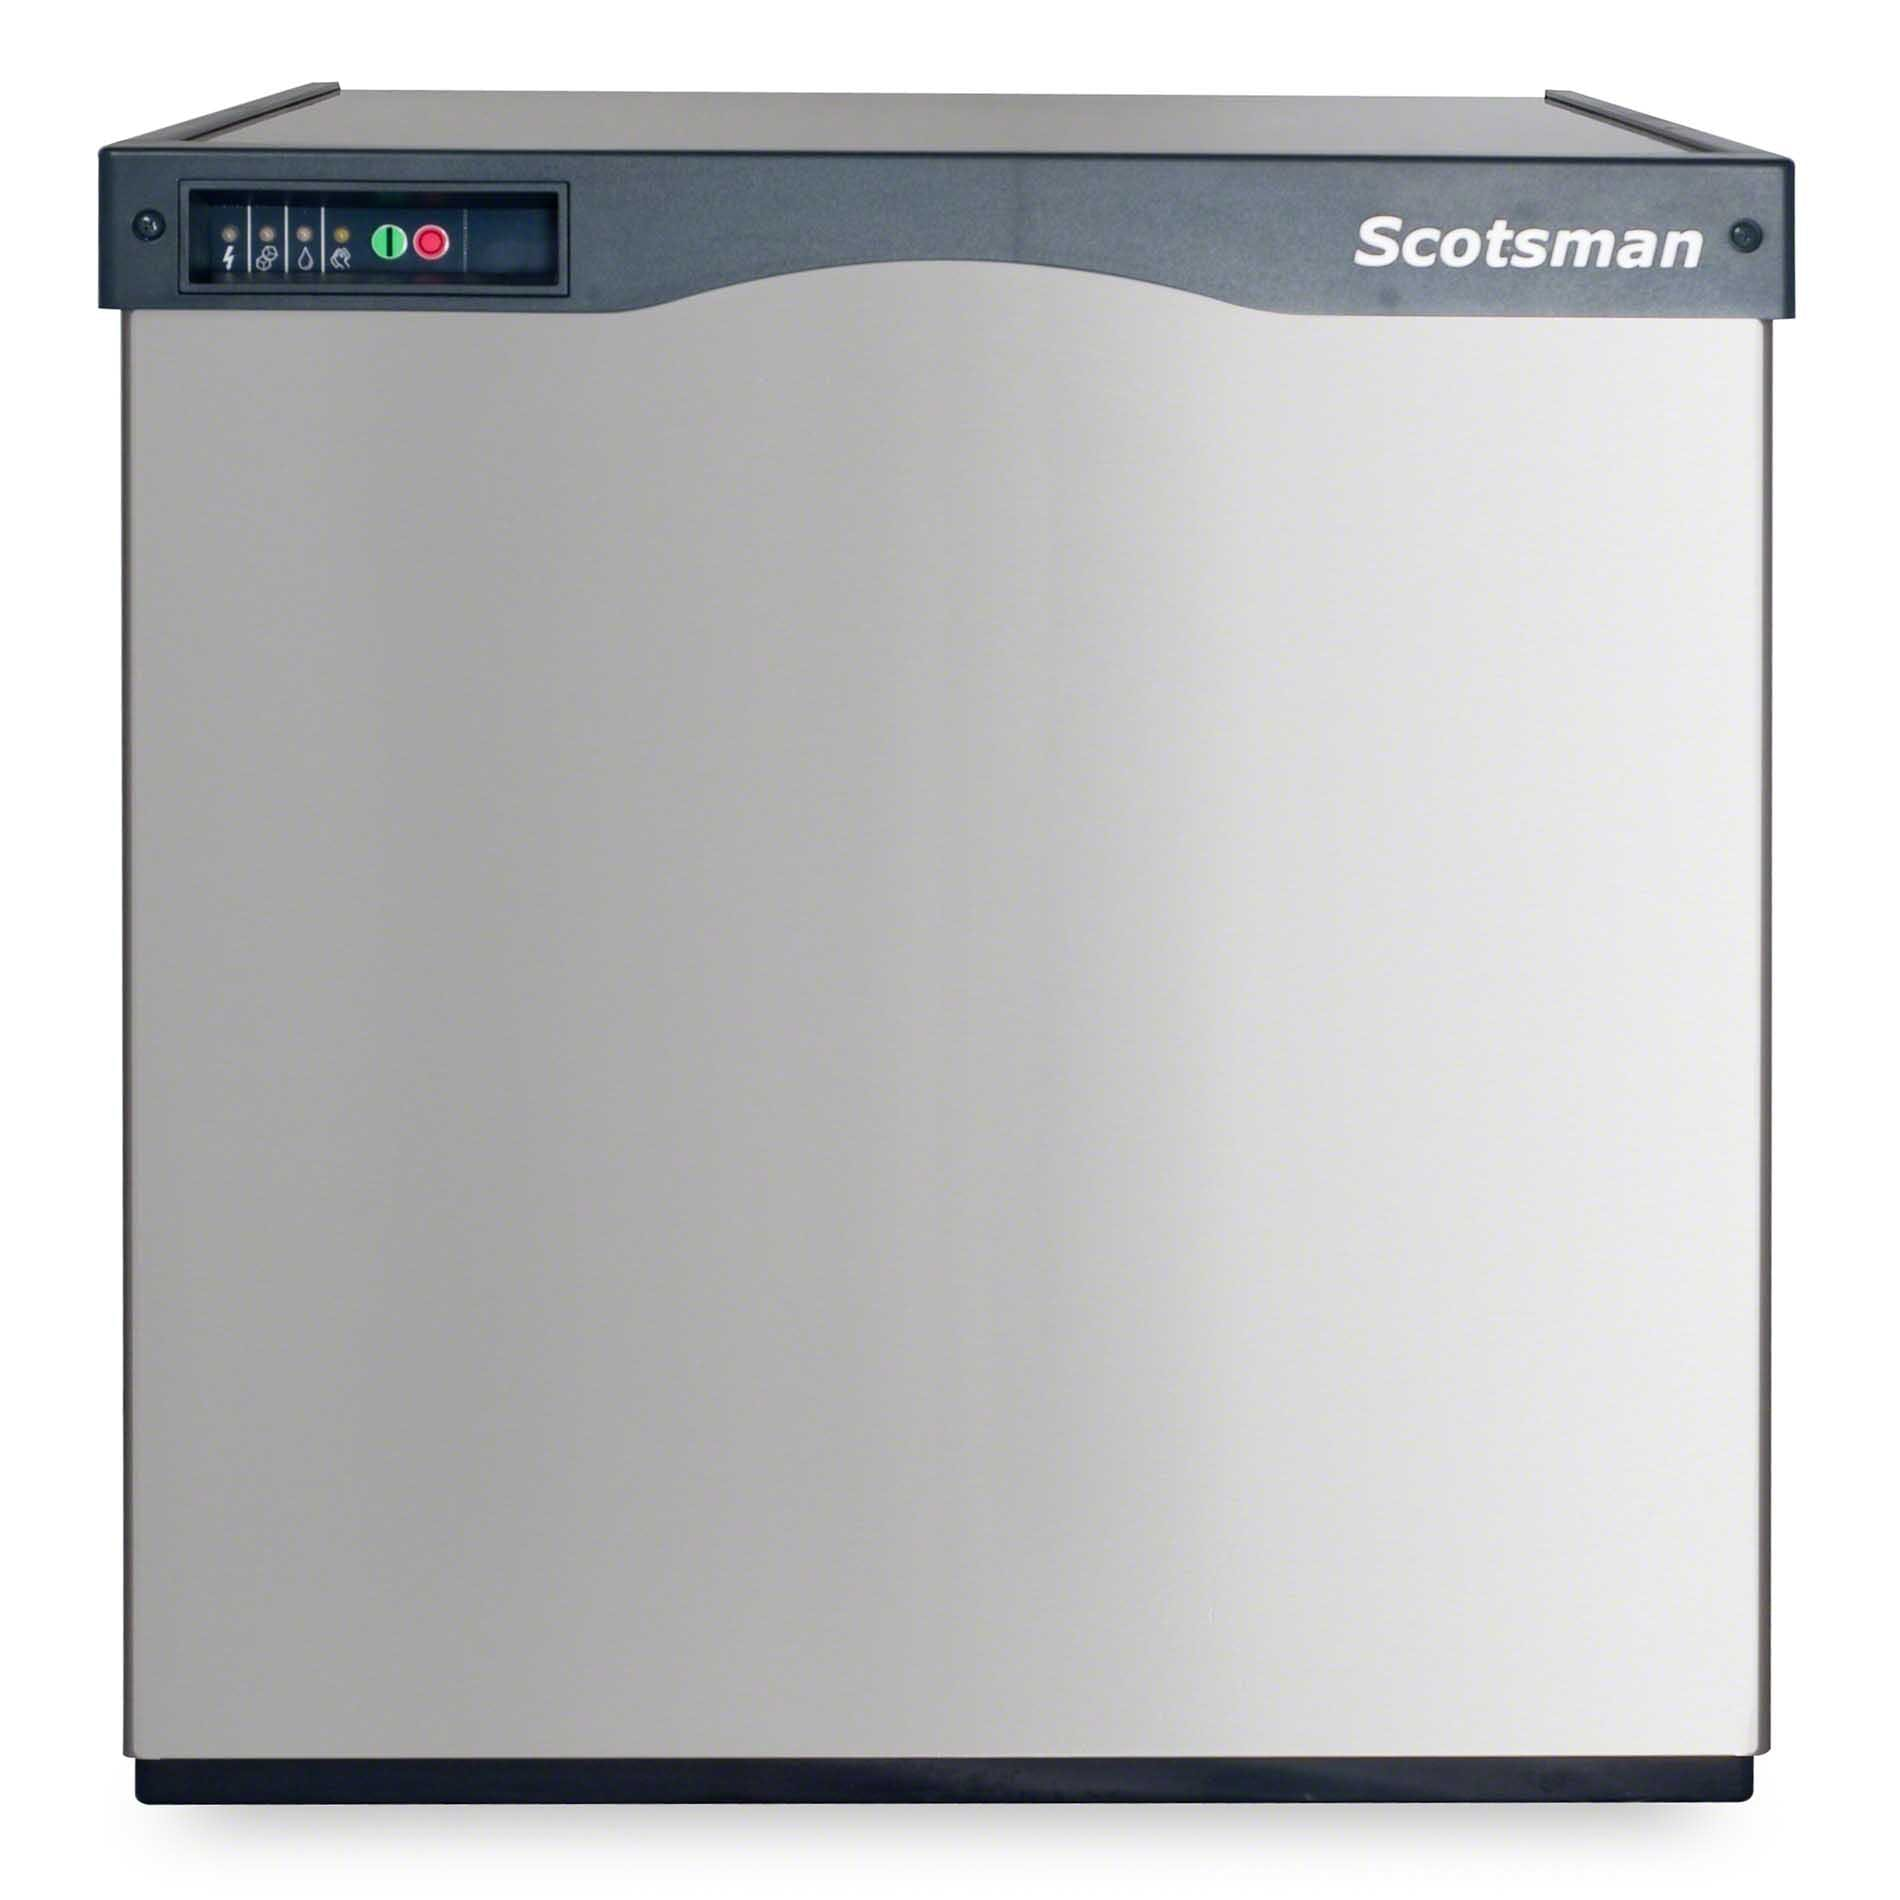 Scotsman - N0622W-1A 715 lb Nugget Ice Machine - Prodigy Series - sold by Food Service Warehouse